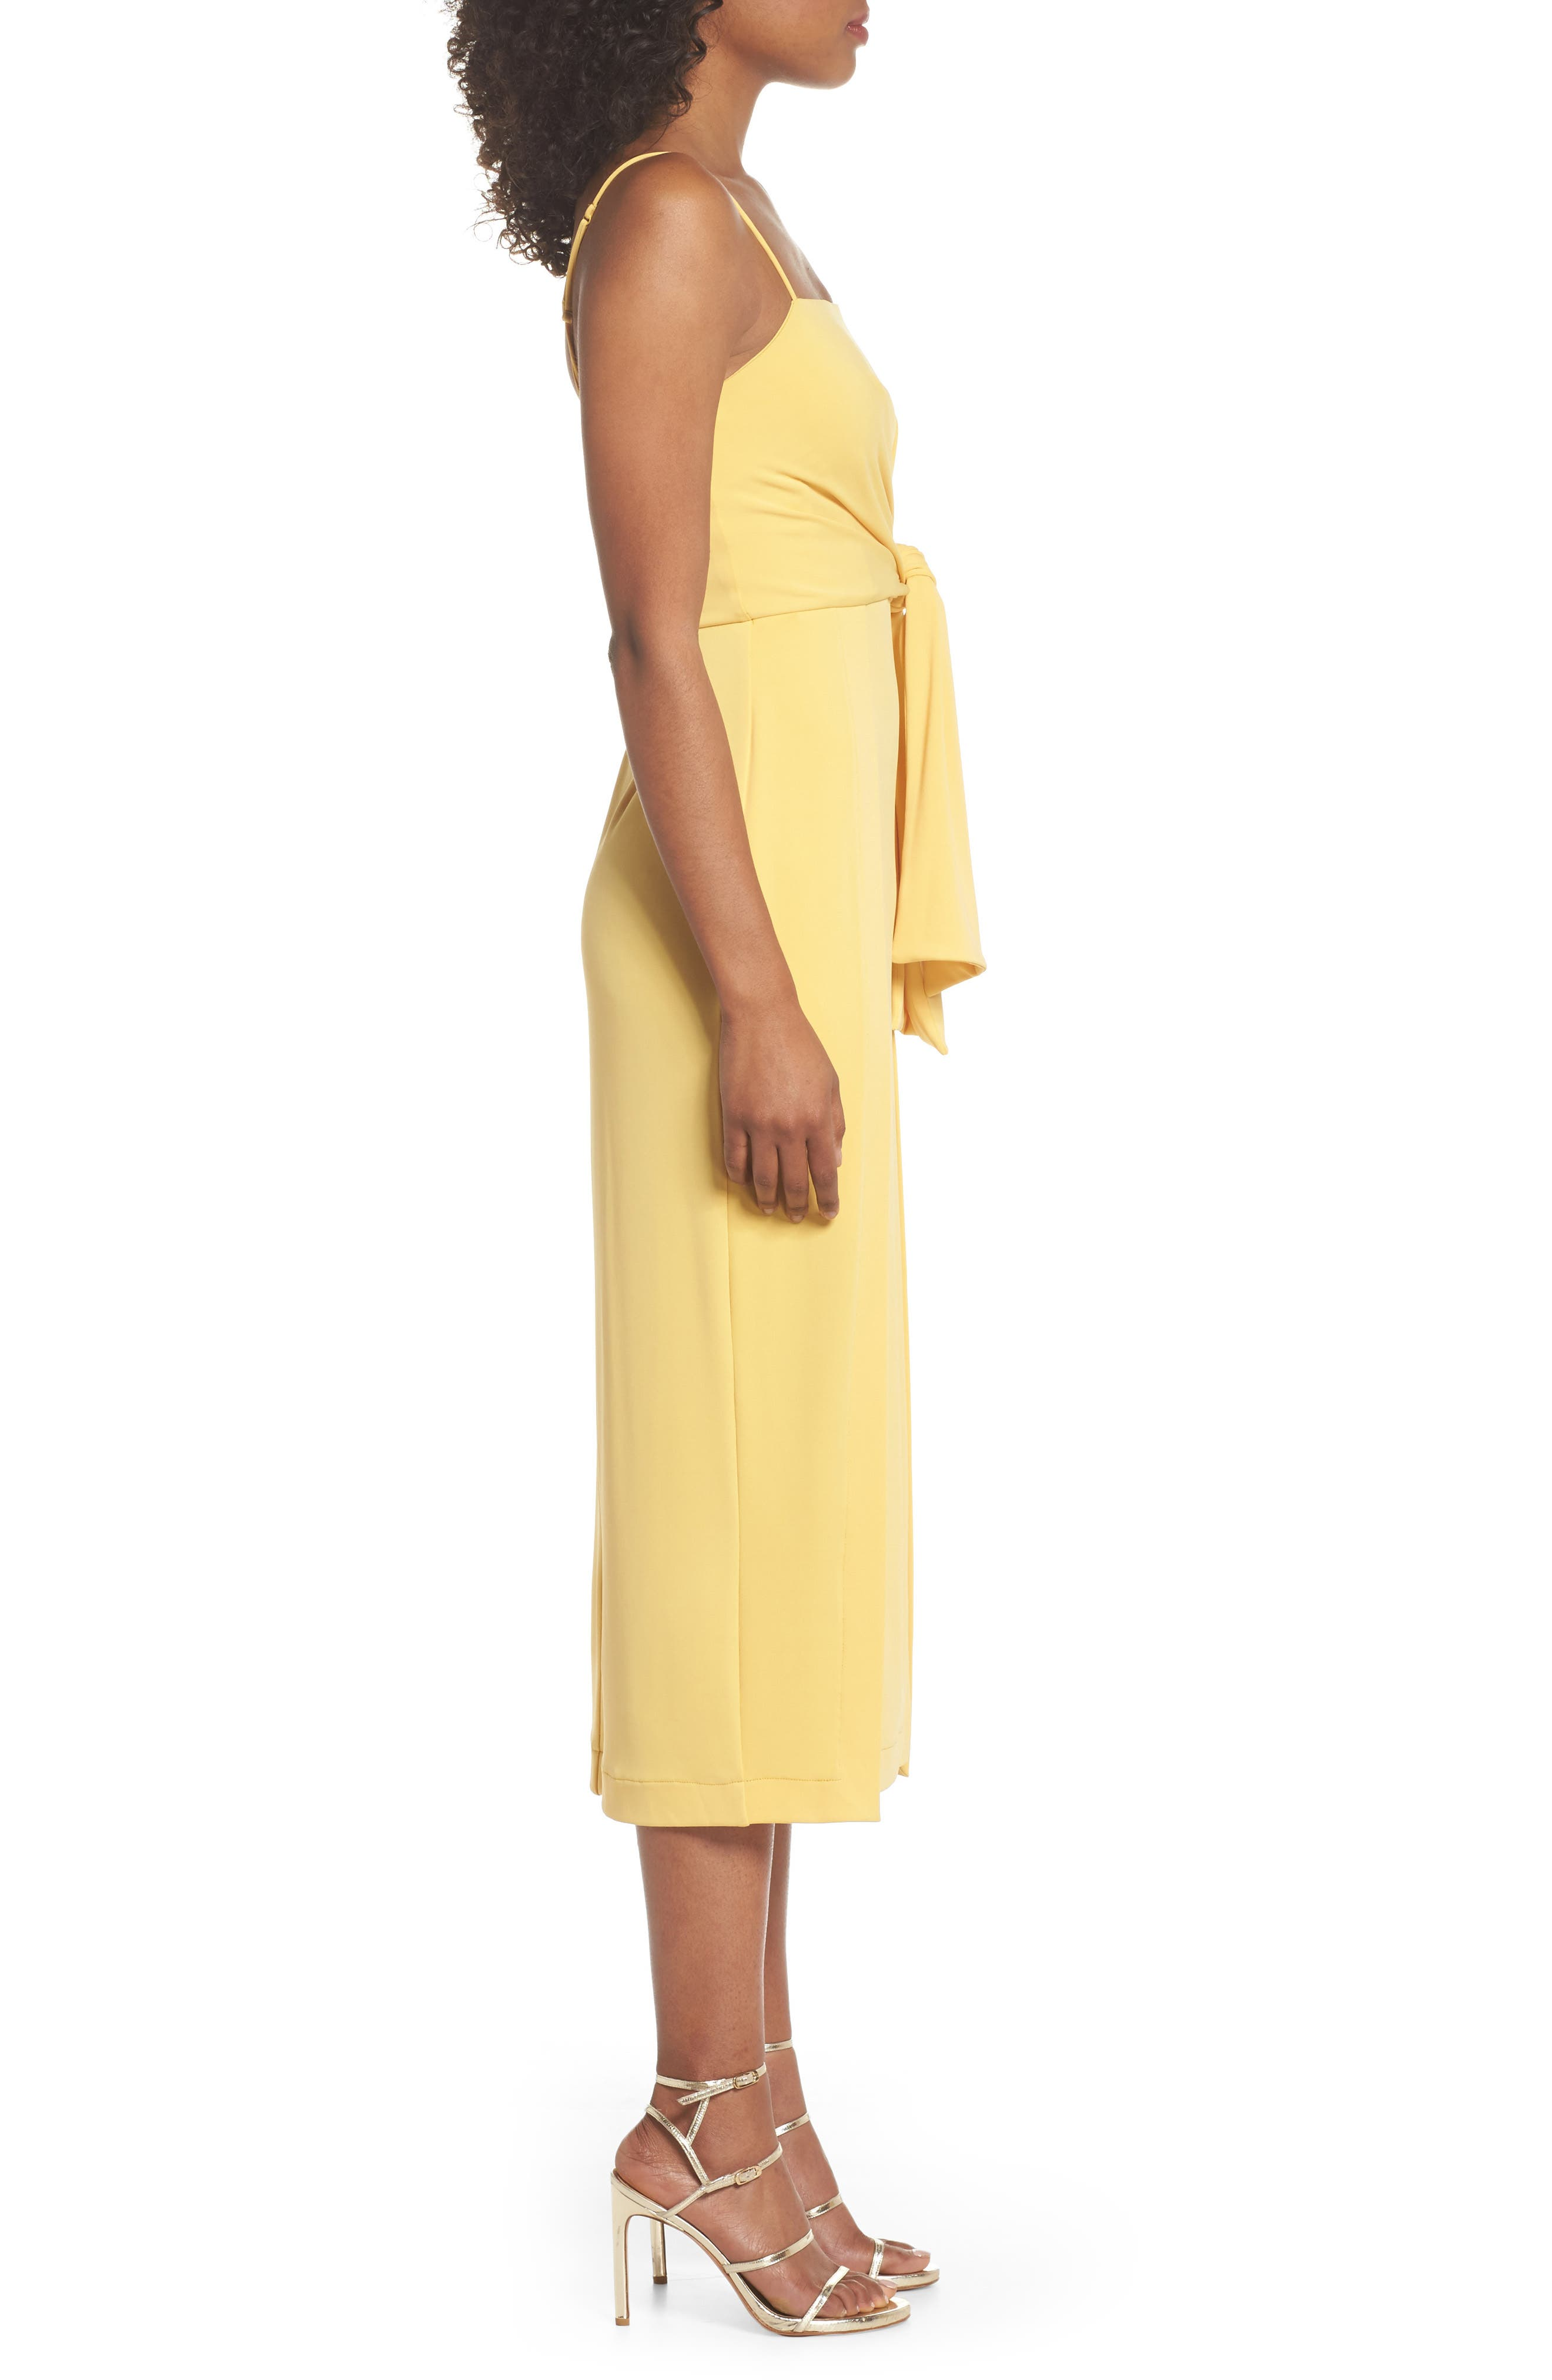 Recollect Slinky Side Tie Midi Dress,                             Alternate thumbnail 3, color,                             740